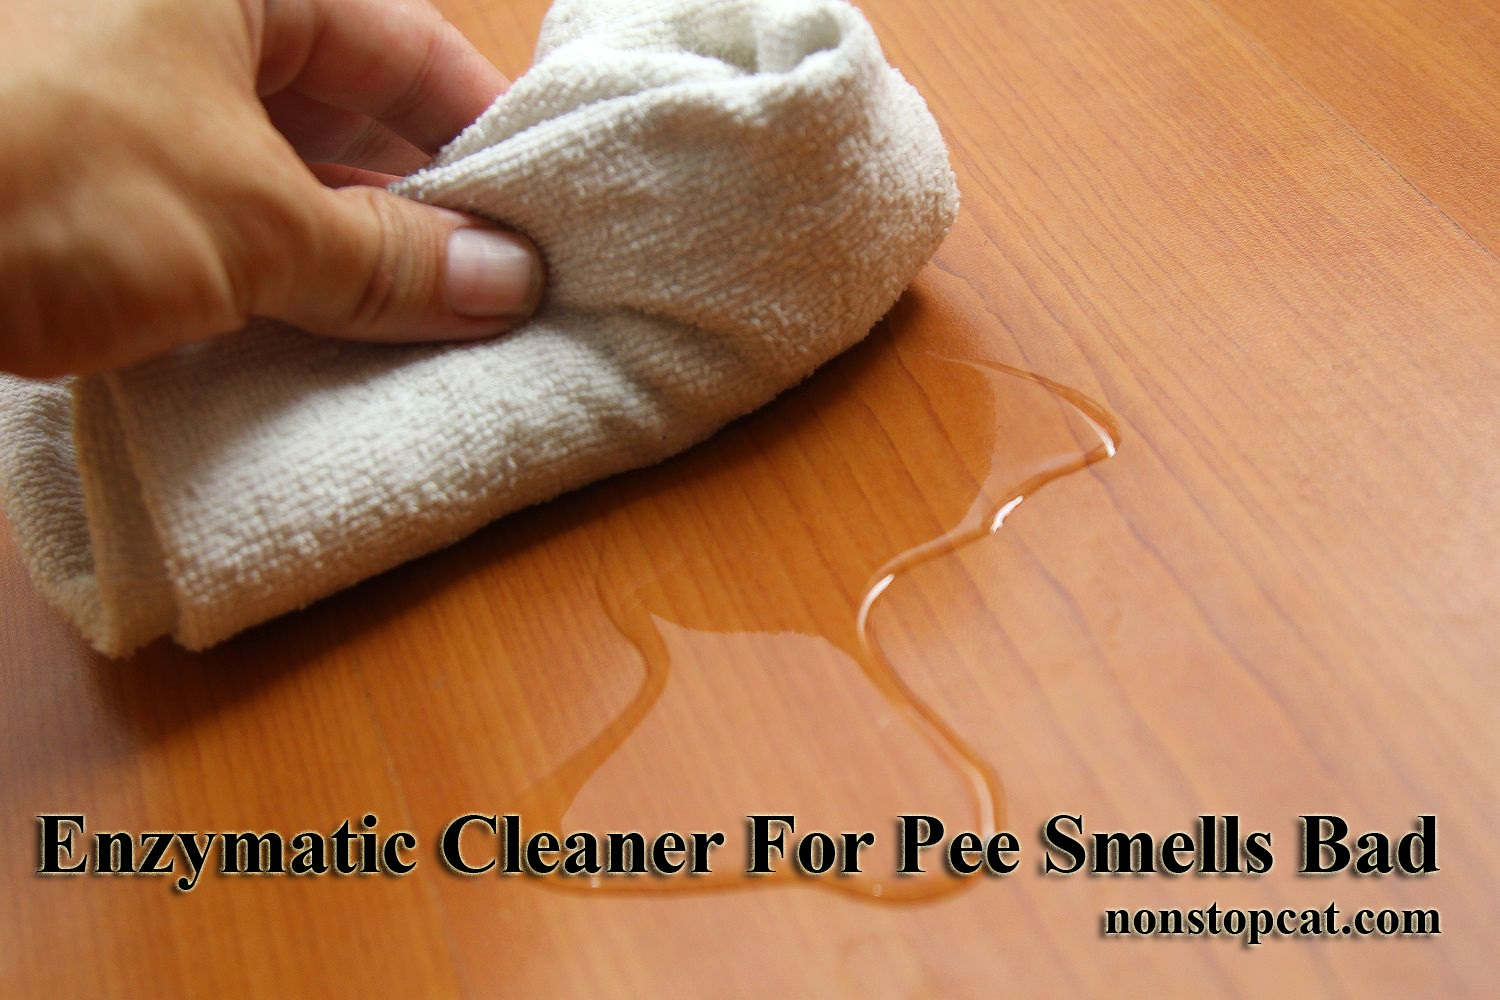 Enzymatic Cleaner For Pee Smells Bad